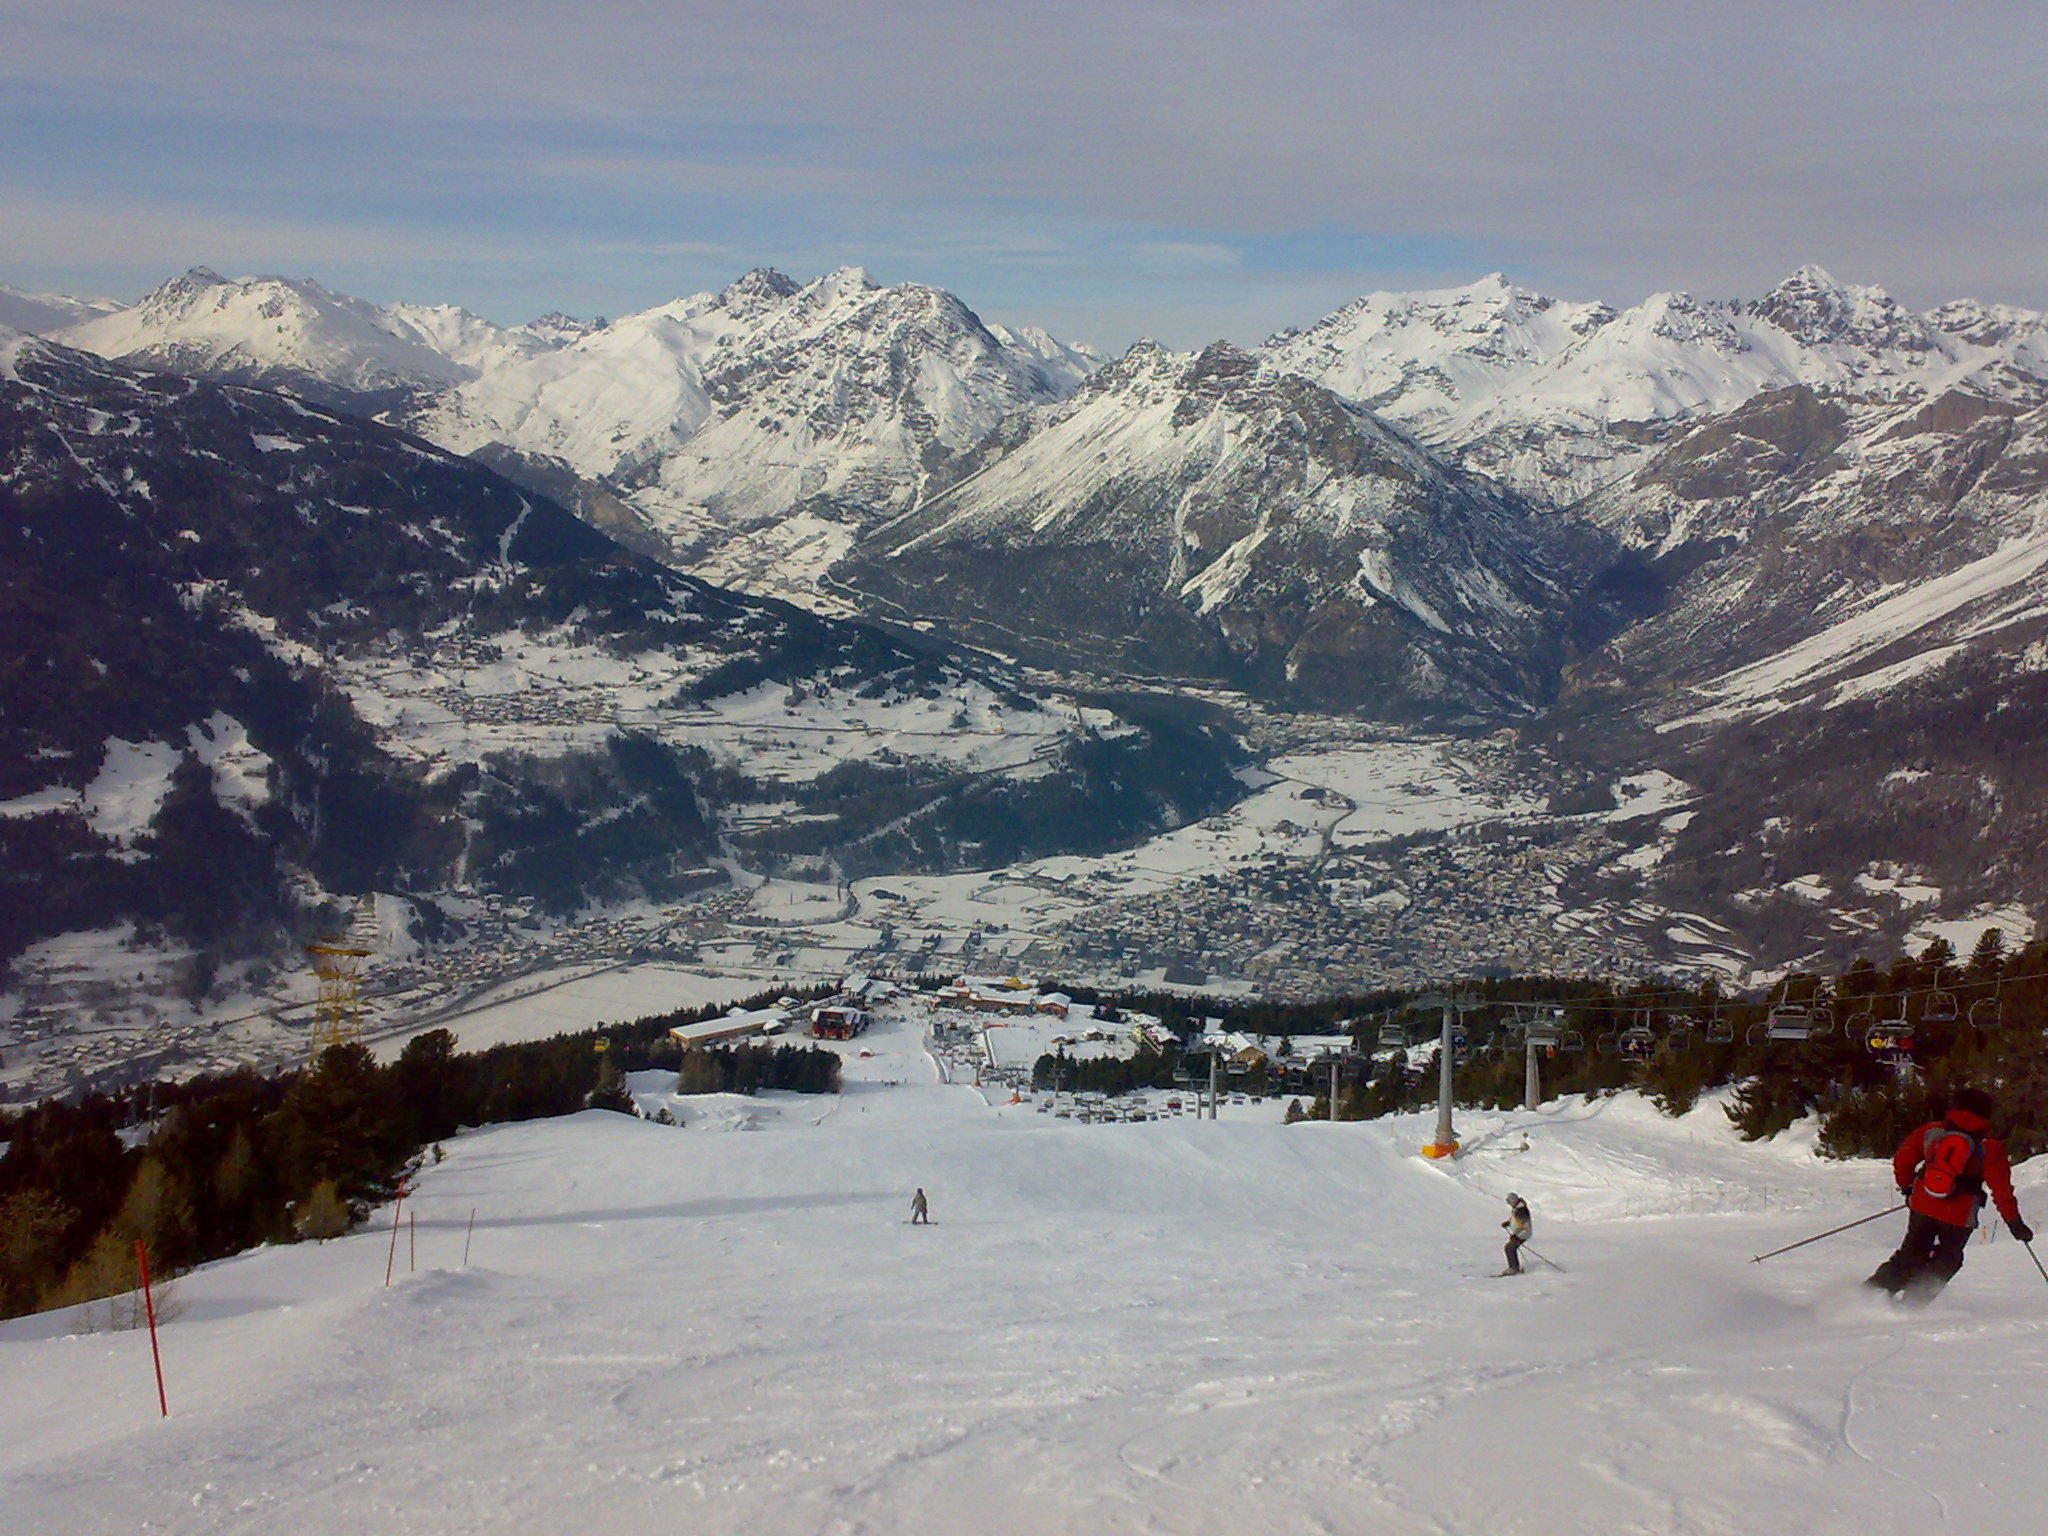 Bormio - B piste from the top